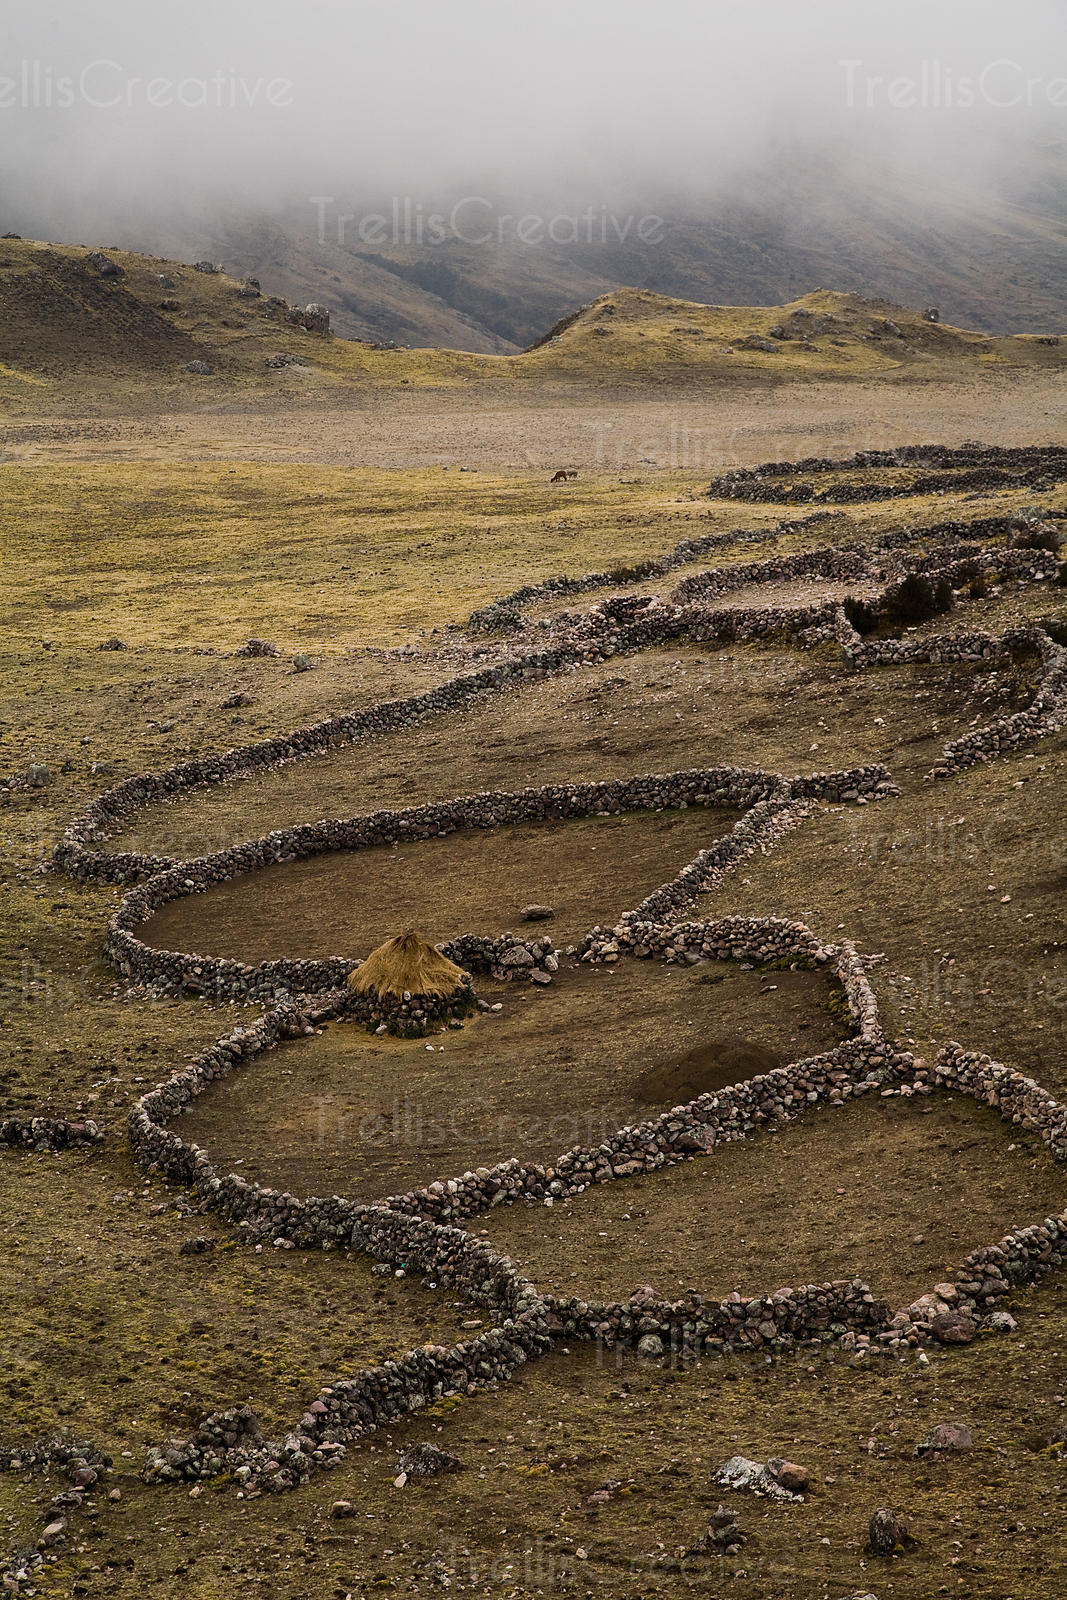 The stone wall rings provide protection from predators when nomadic herders need to rest overnight, Lares Trek, Andes Mountai...